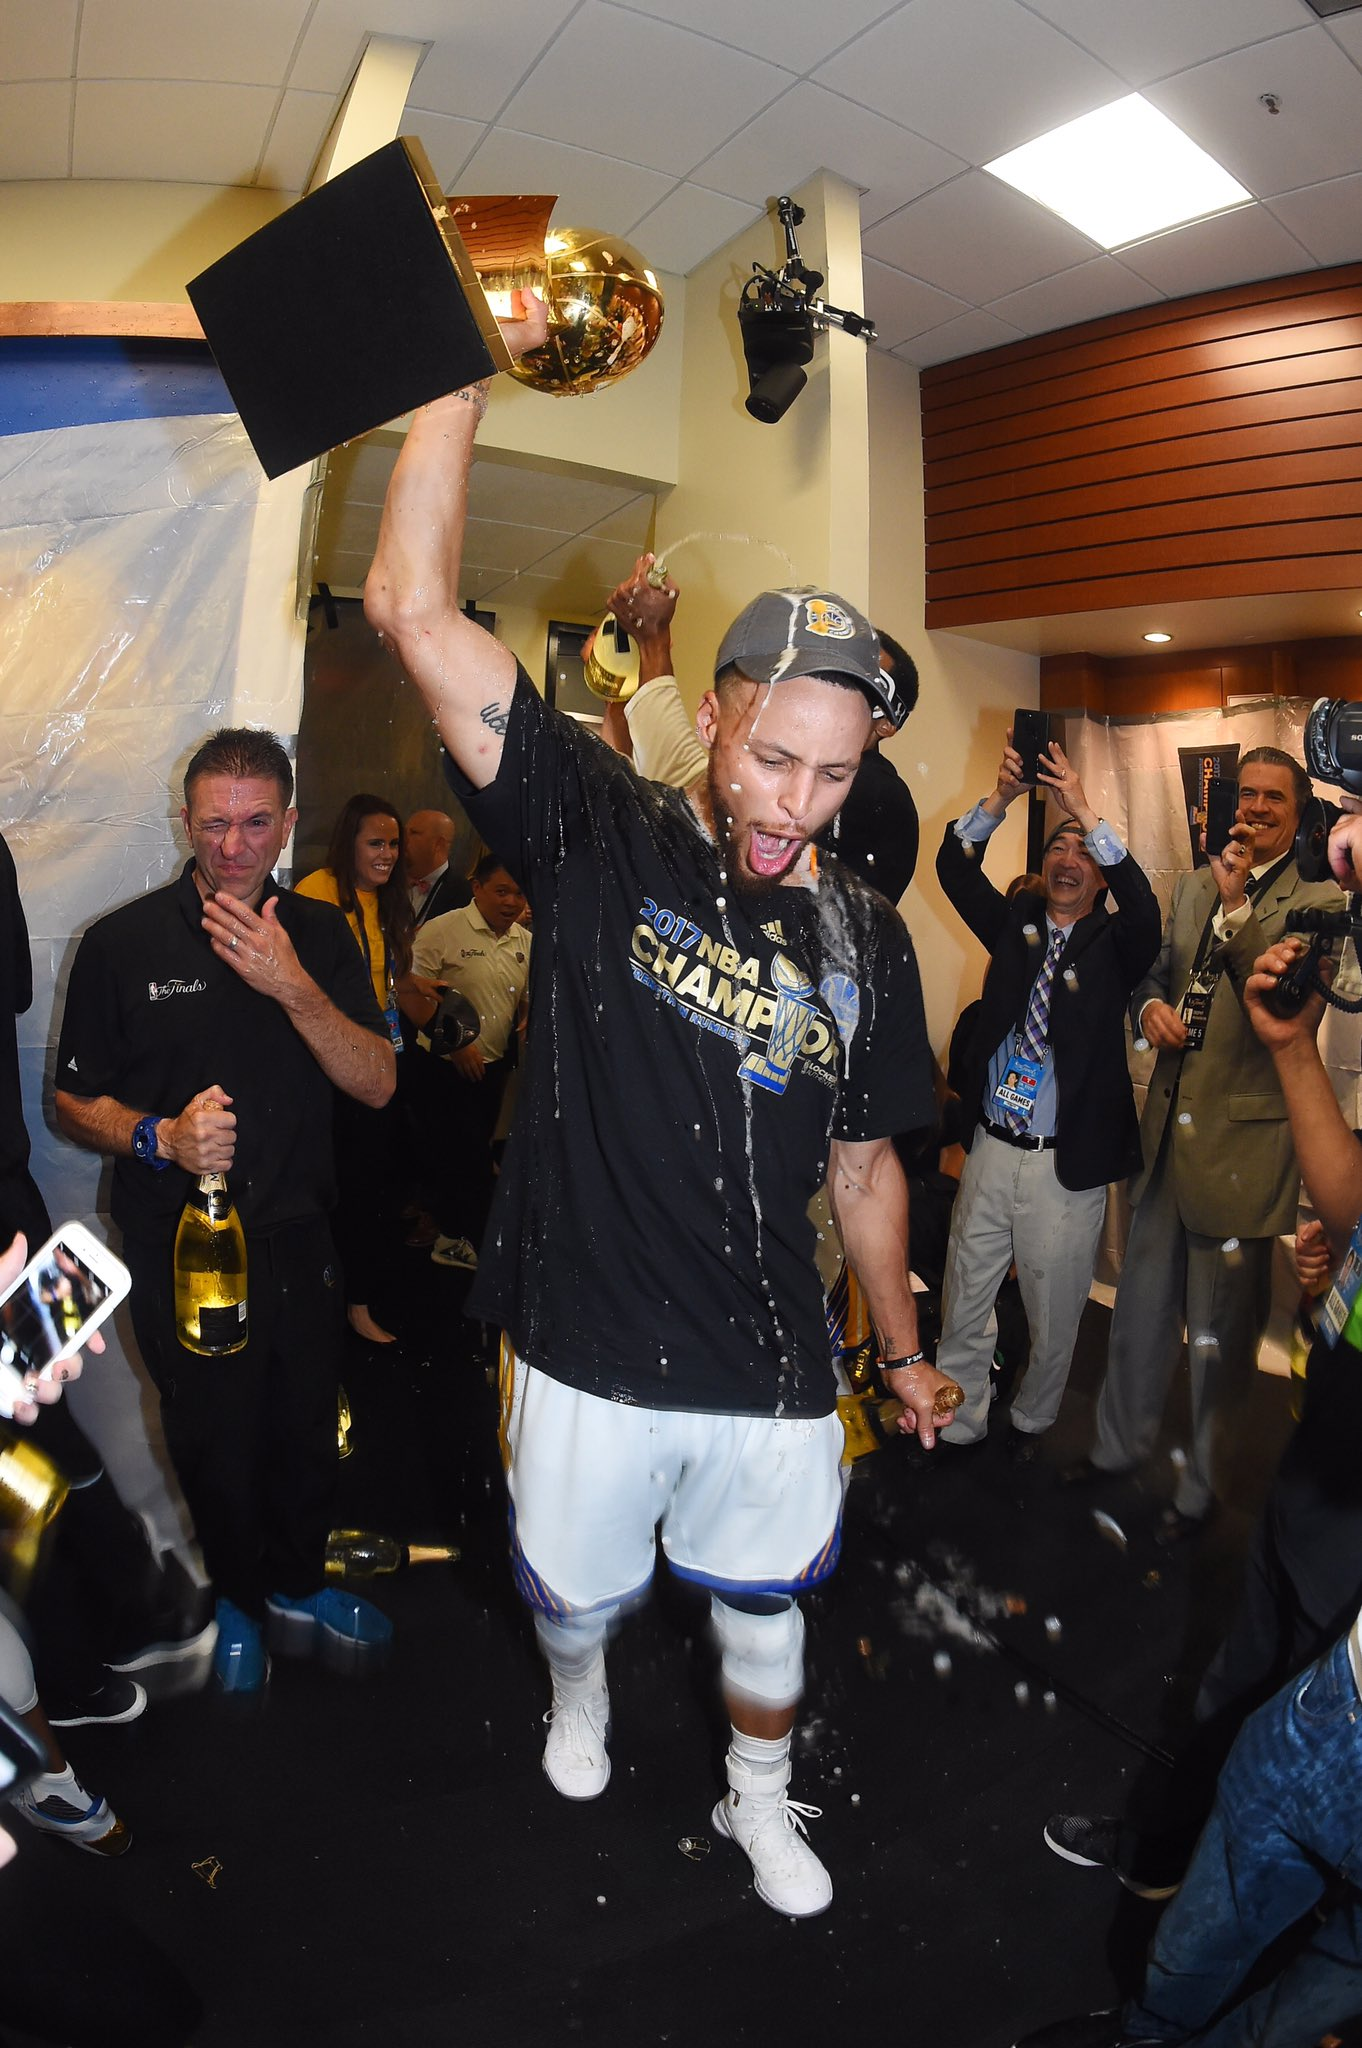 Champagne celebrations!  ������ #ThisIsWhyWePlay https://t.co/eUOV1MooTi